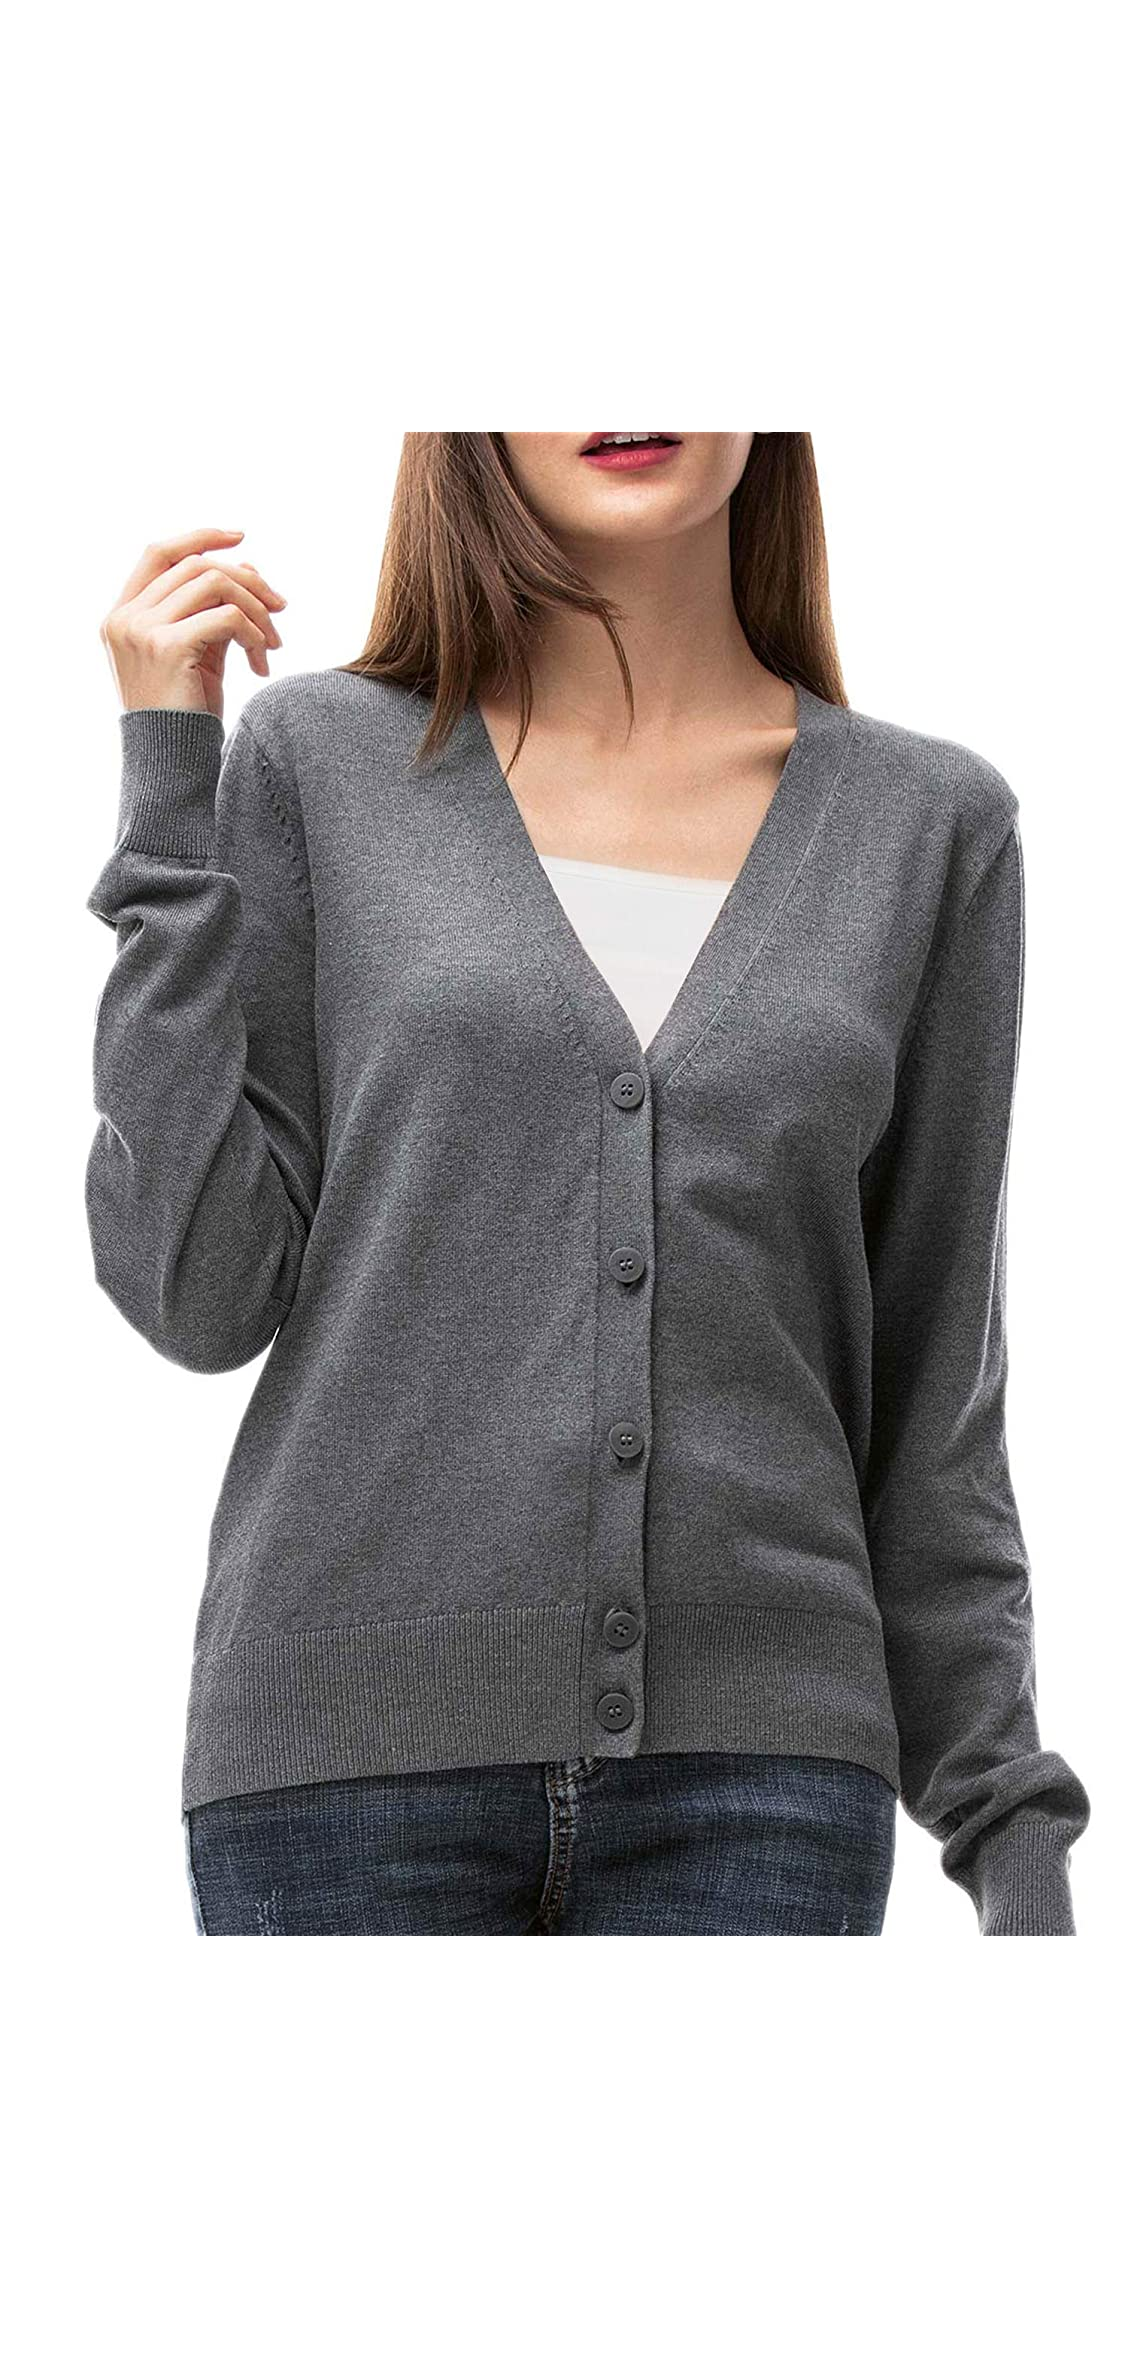 Womens V Neck Button Down Cardigan Sweaters Long